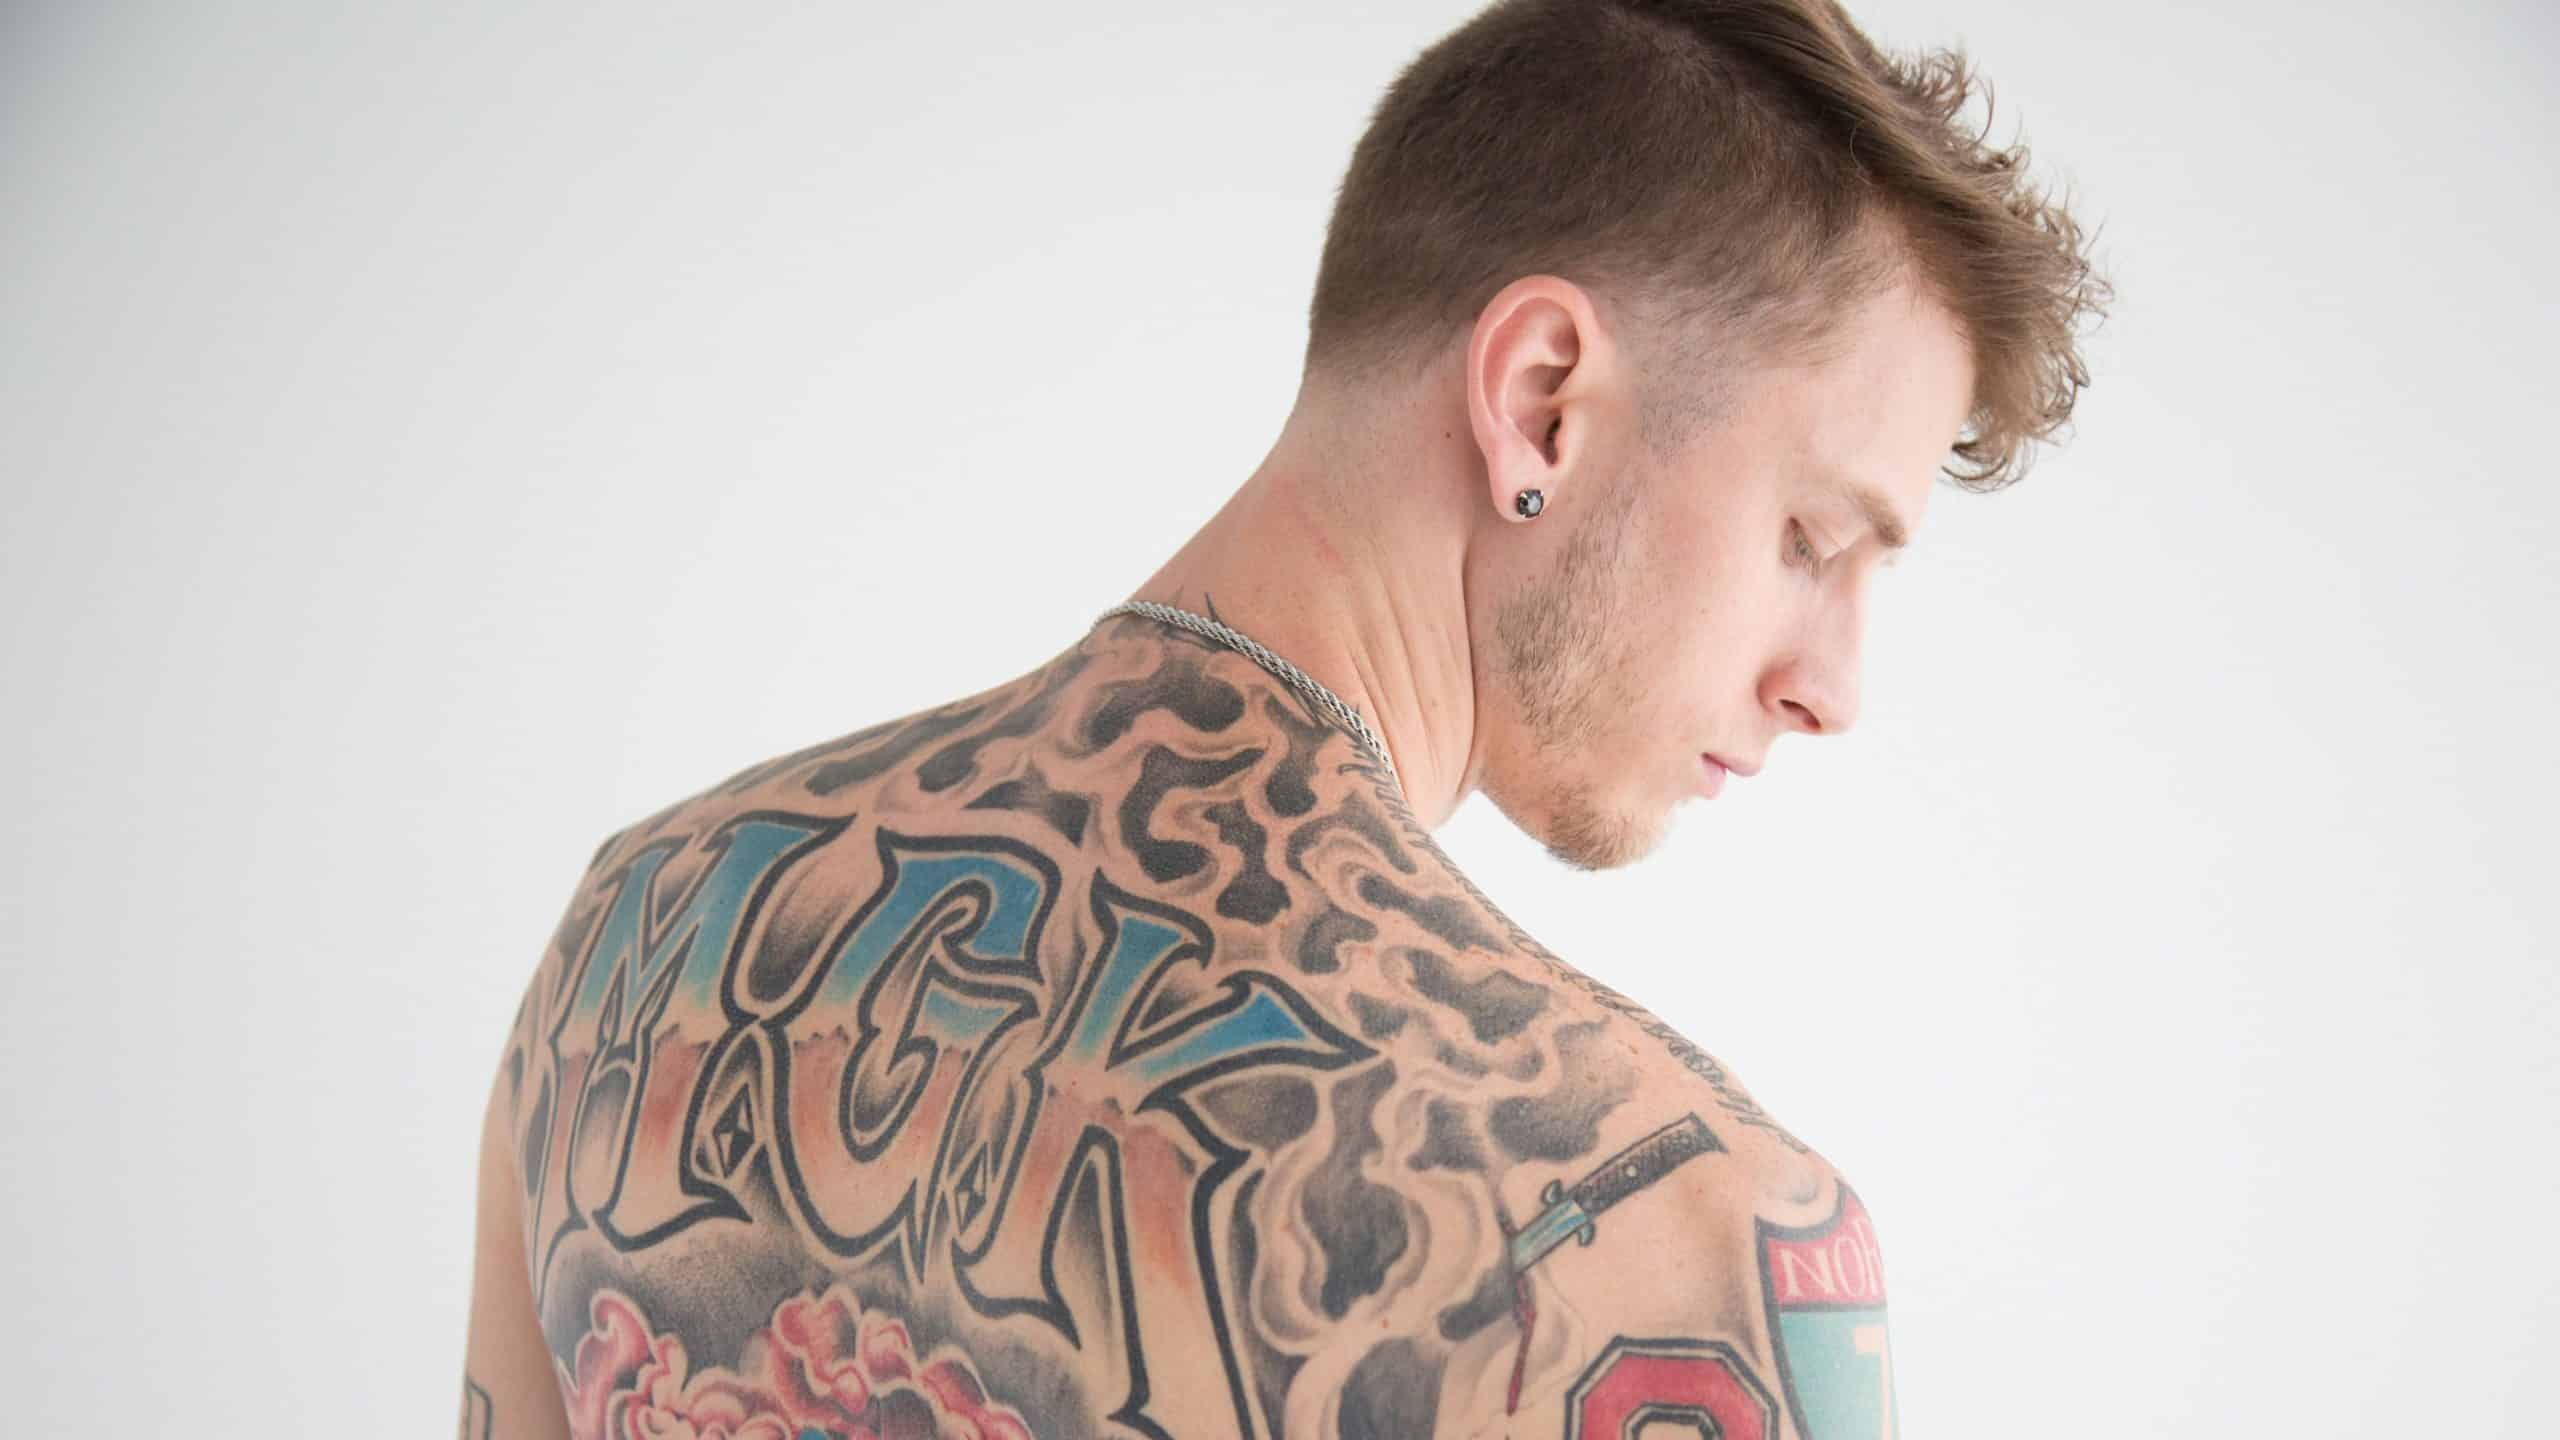 image MGK article son Let You Go